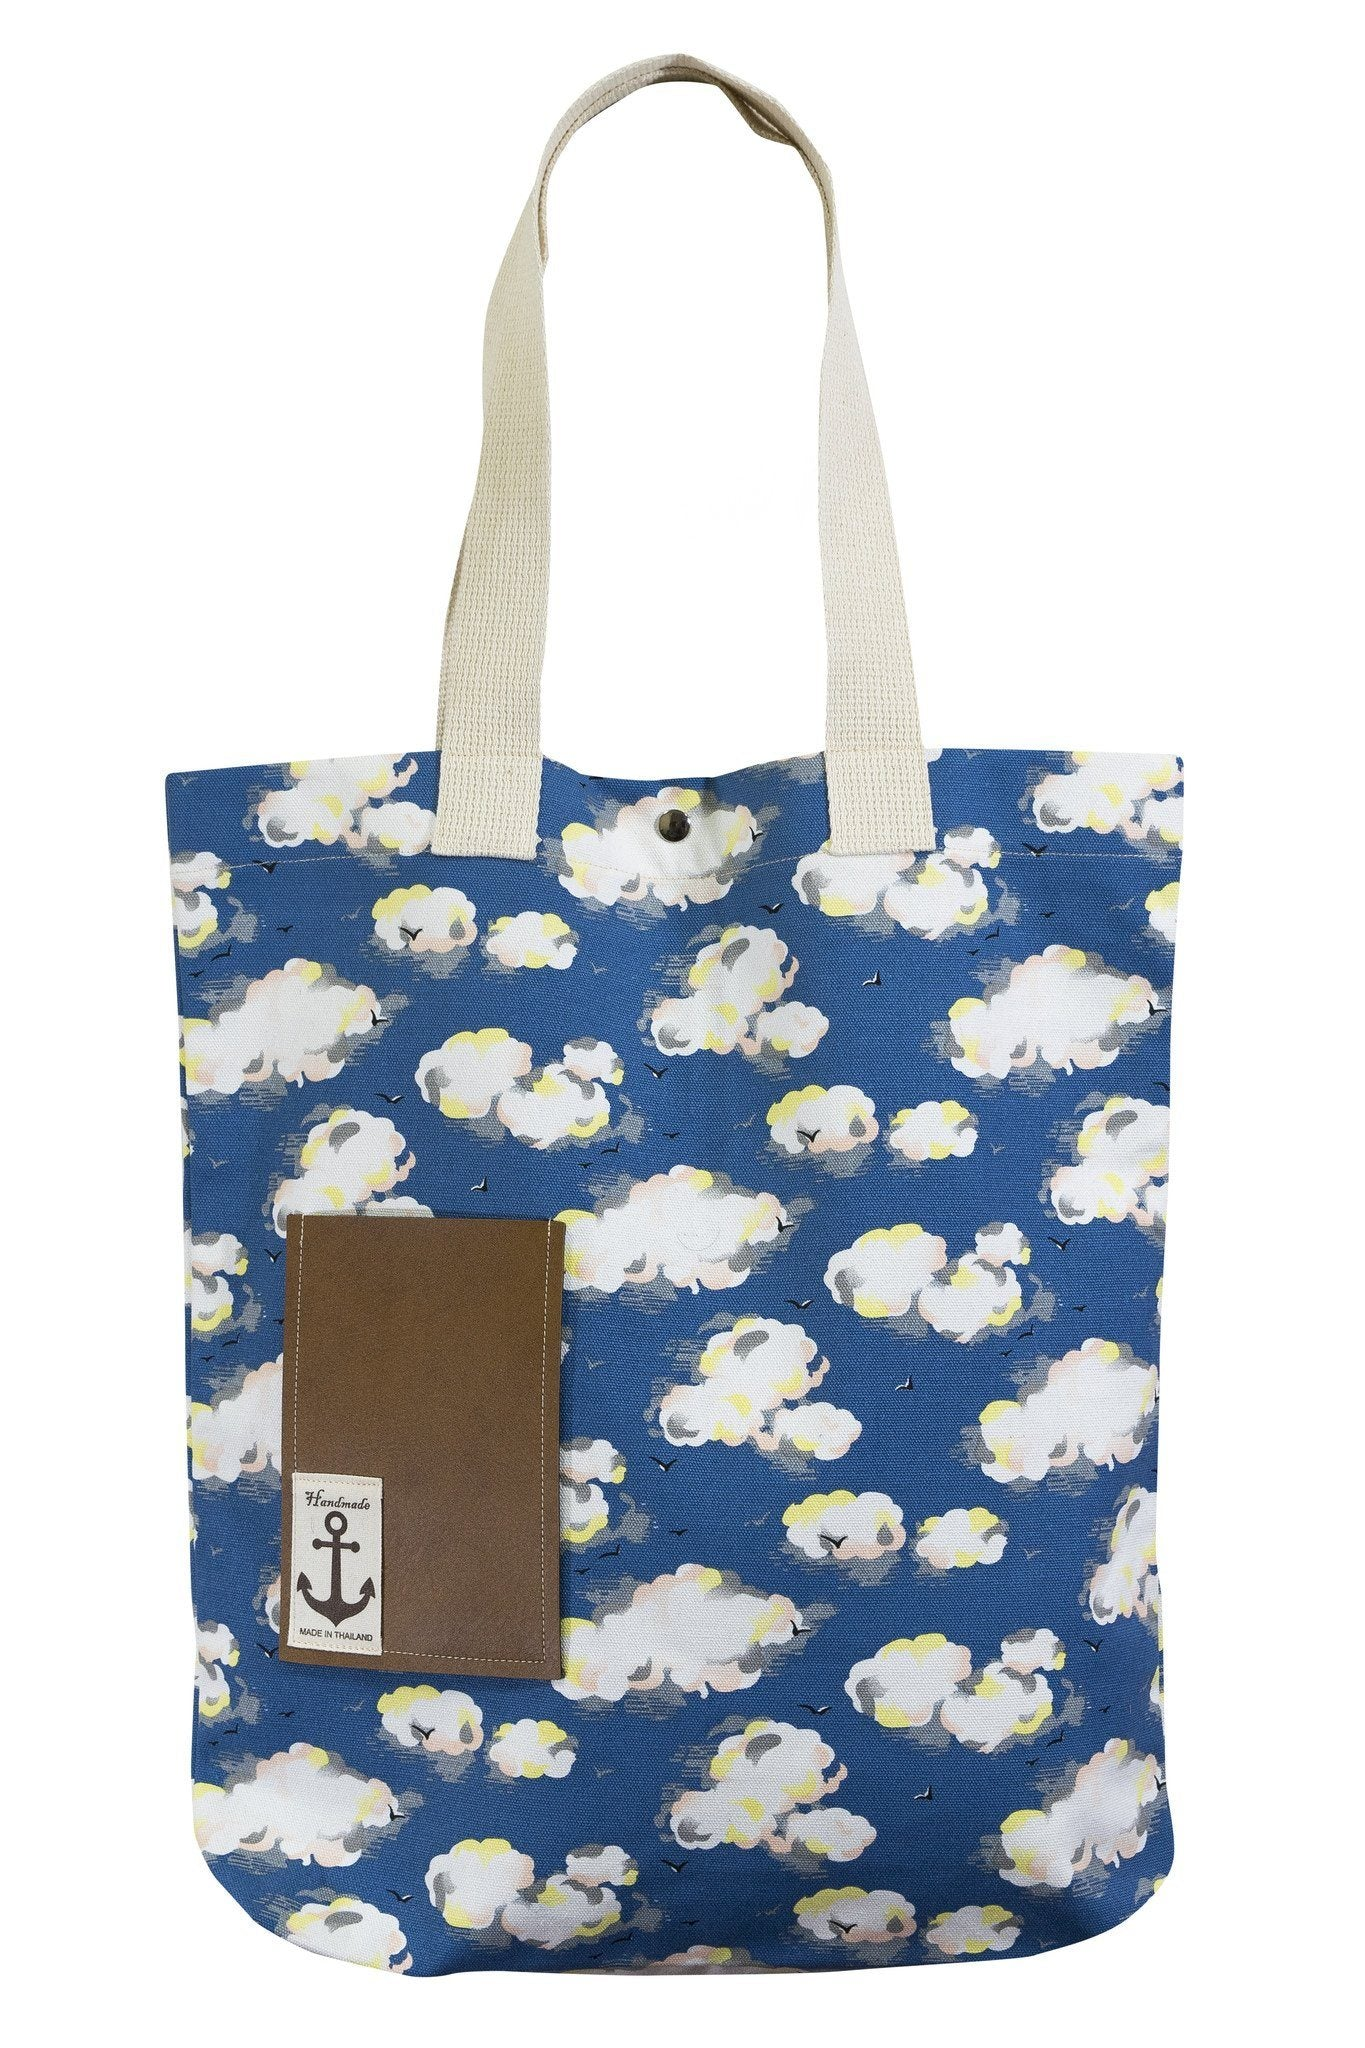 Mr. Tote Shoulder bag Cotton Canvas Printed - CCCollections